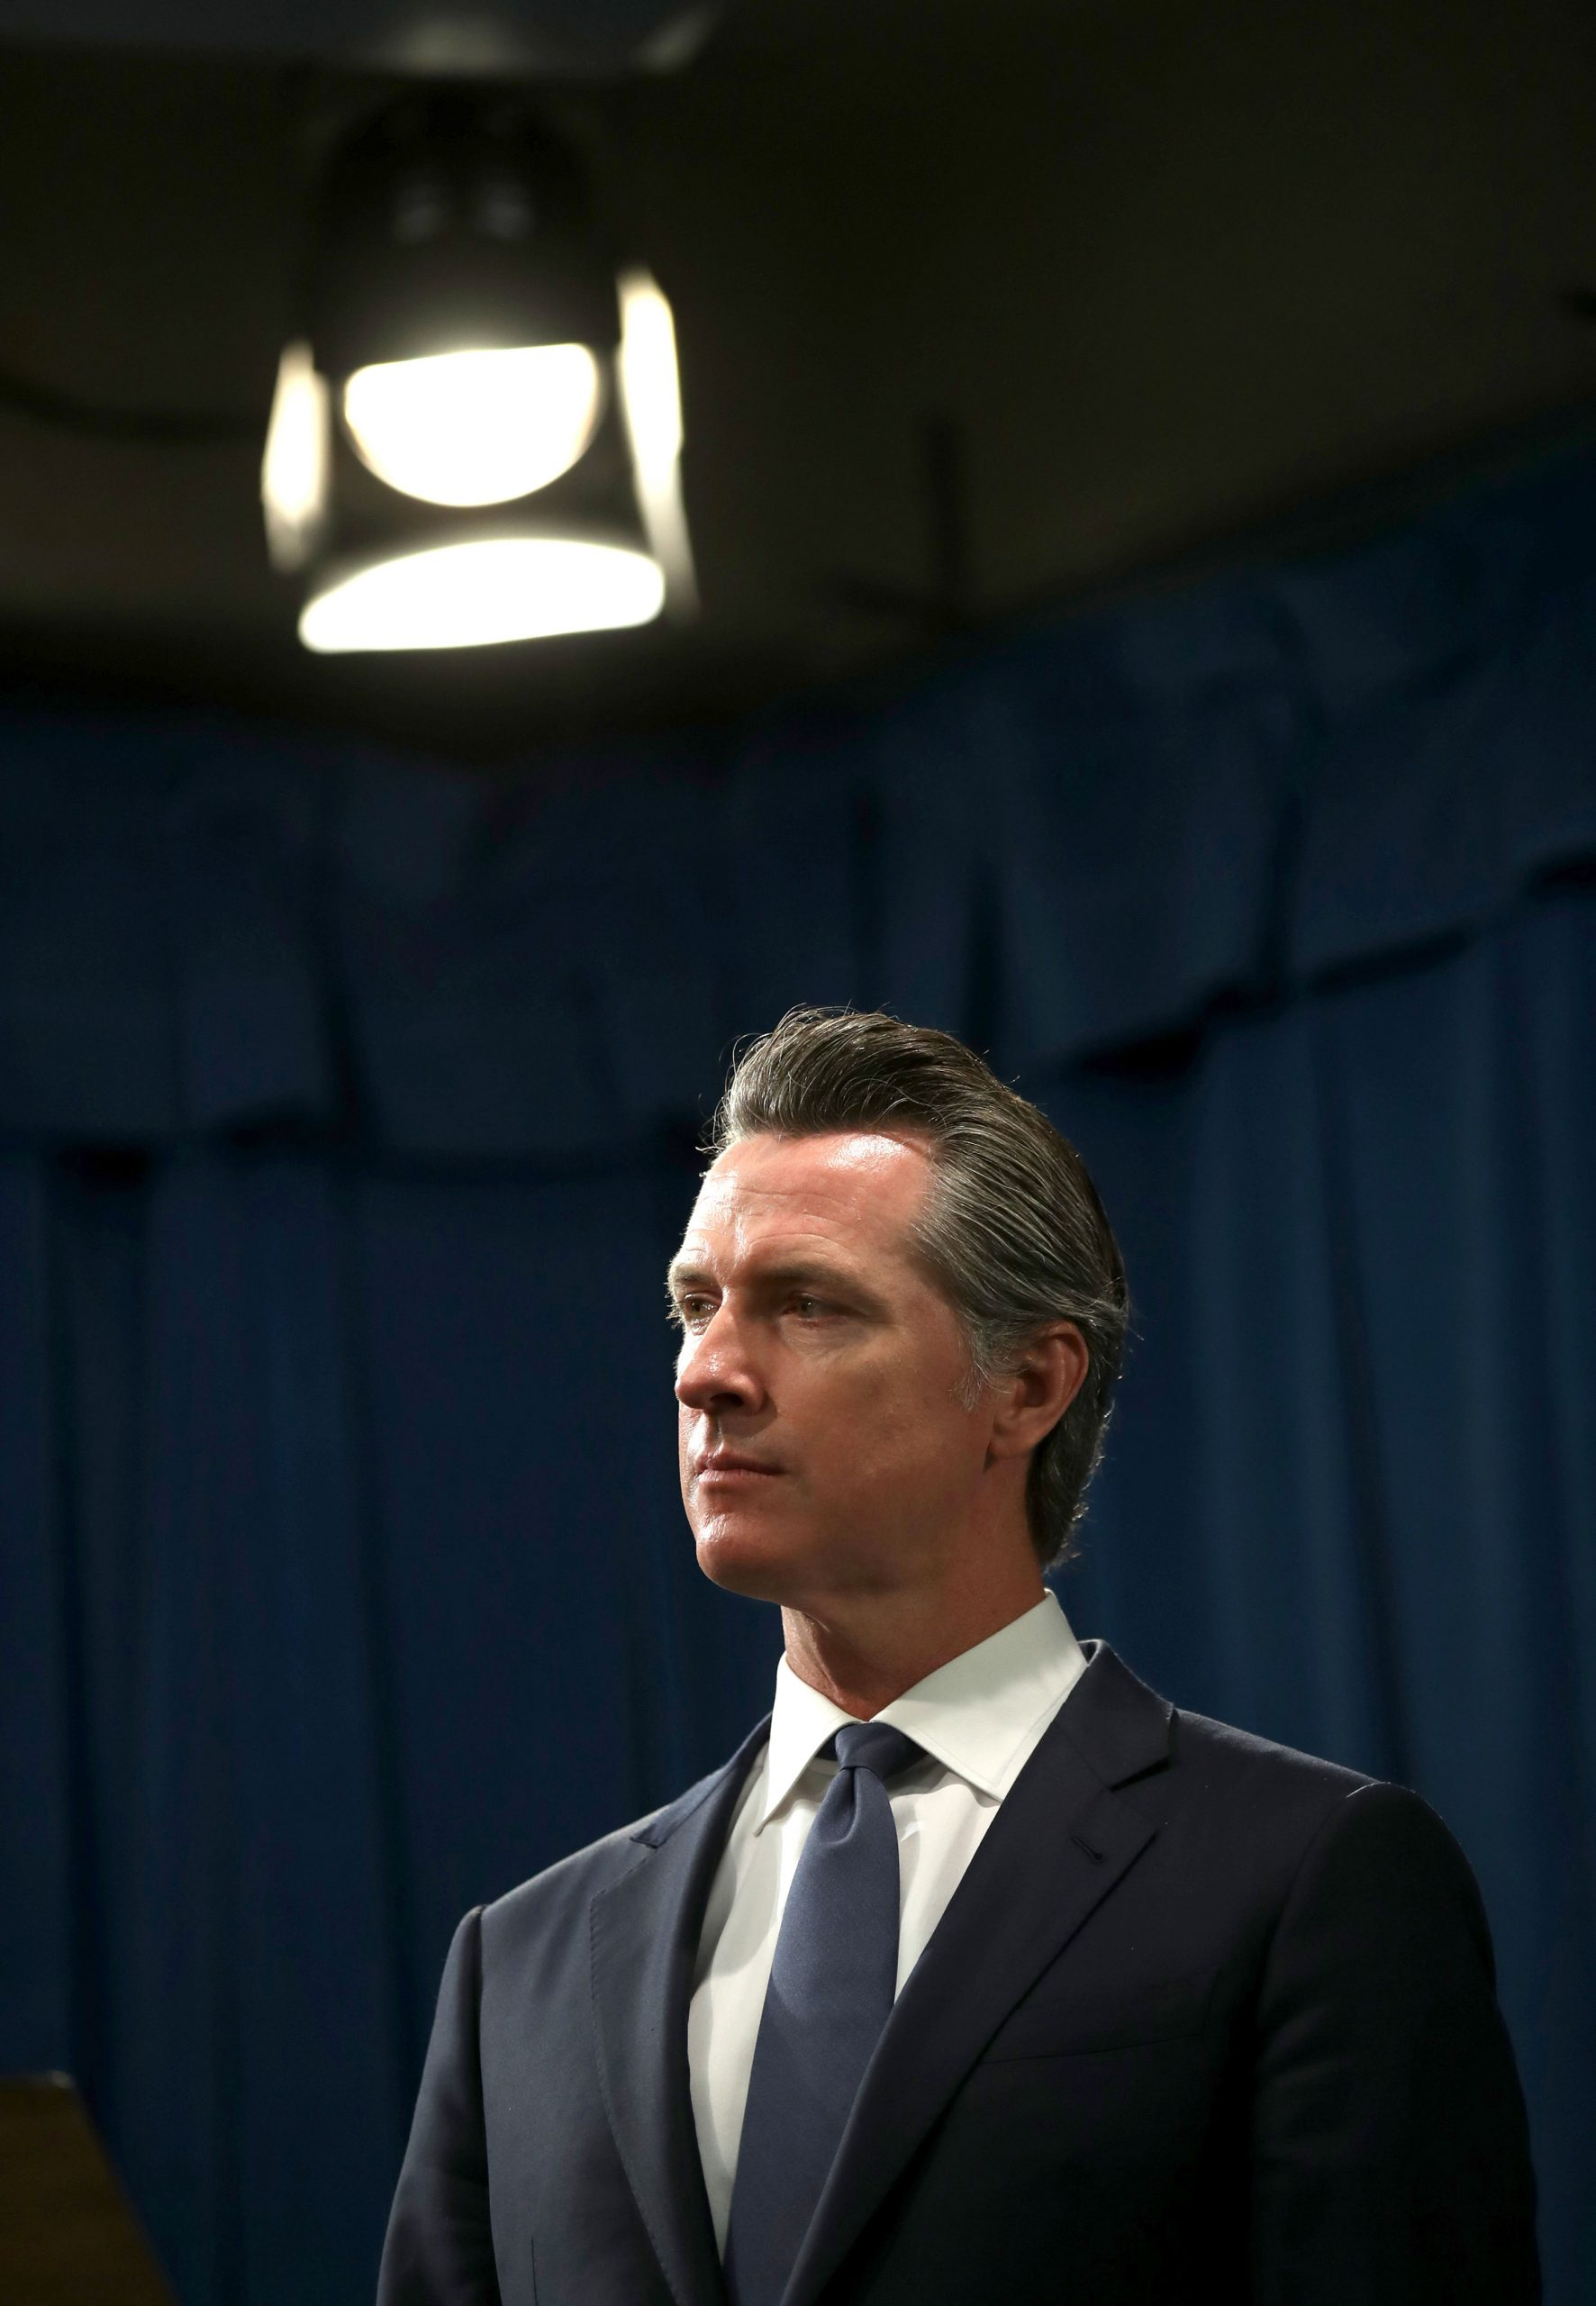 California Democratic Gov. Gavin Newsom on June 28 sued his own secretary of state in an effort to have his party affiliation listed on the state's upcoming recall election ballot following what he called a filing